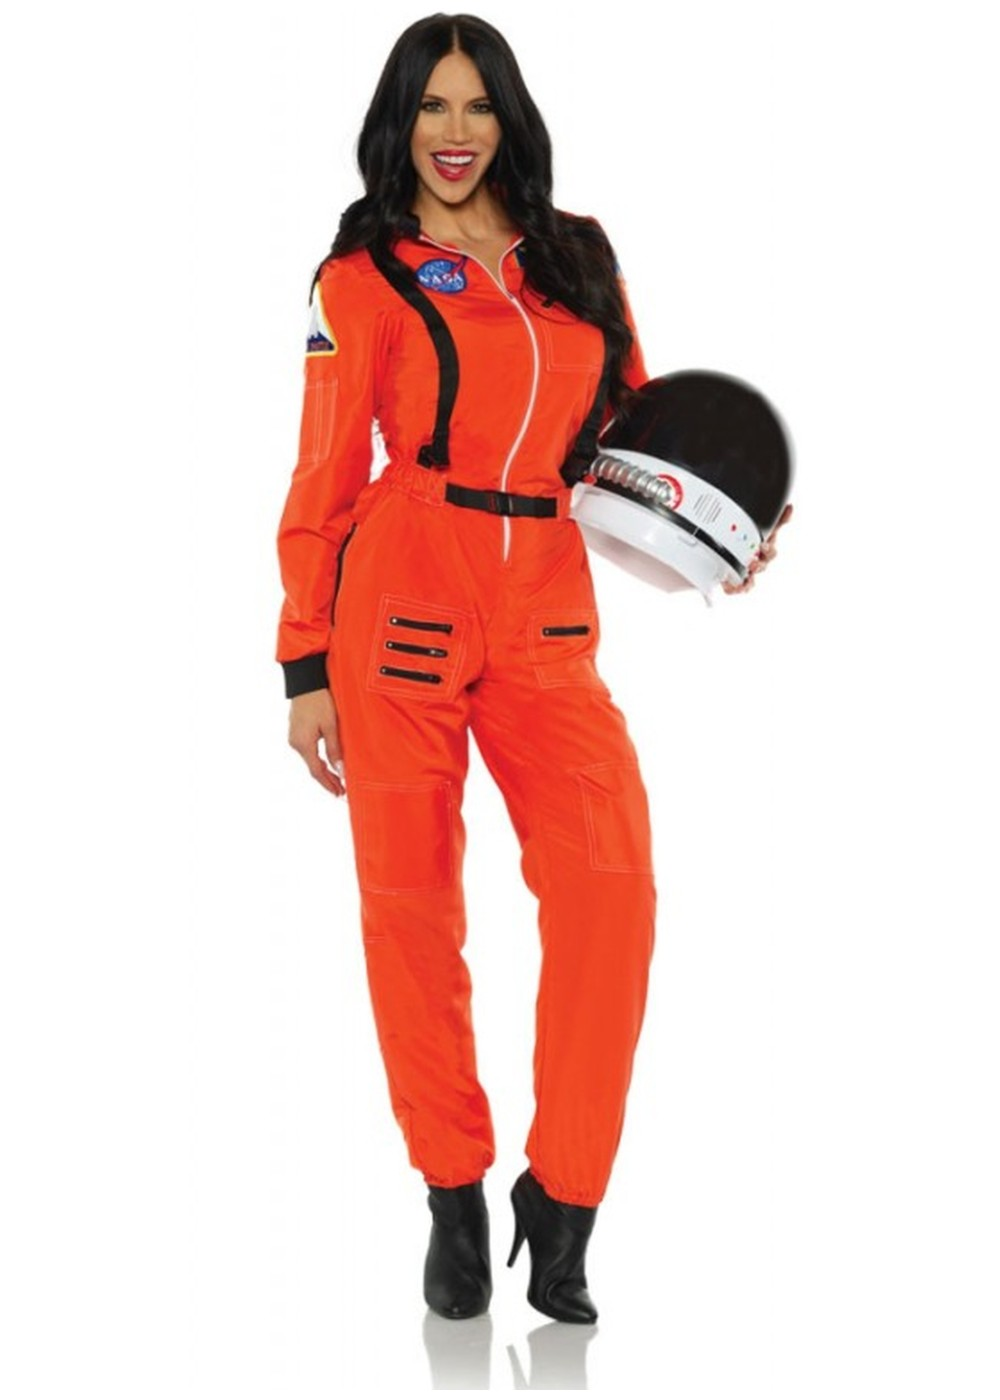 Astronaut Orange Woman Costume